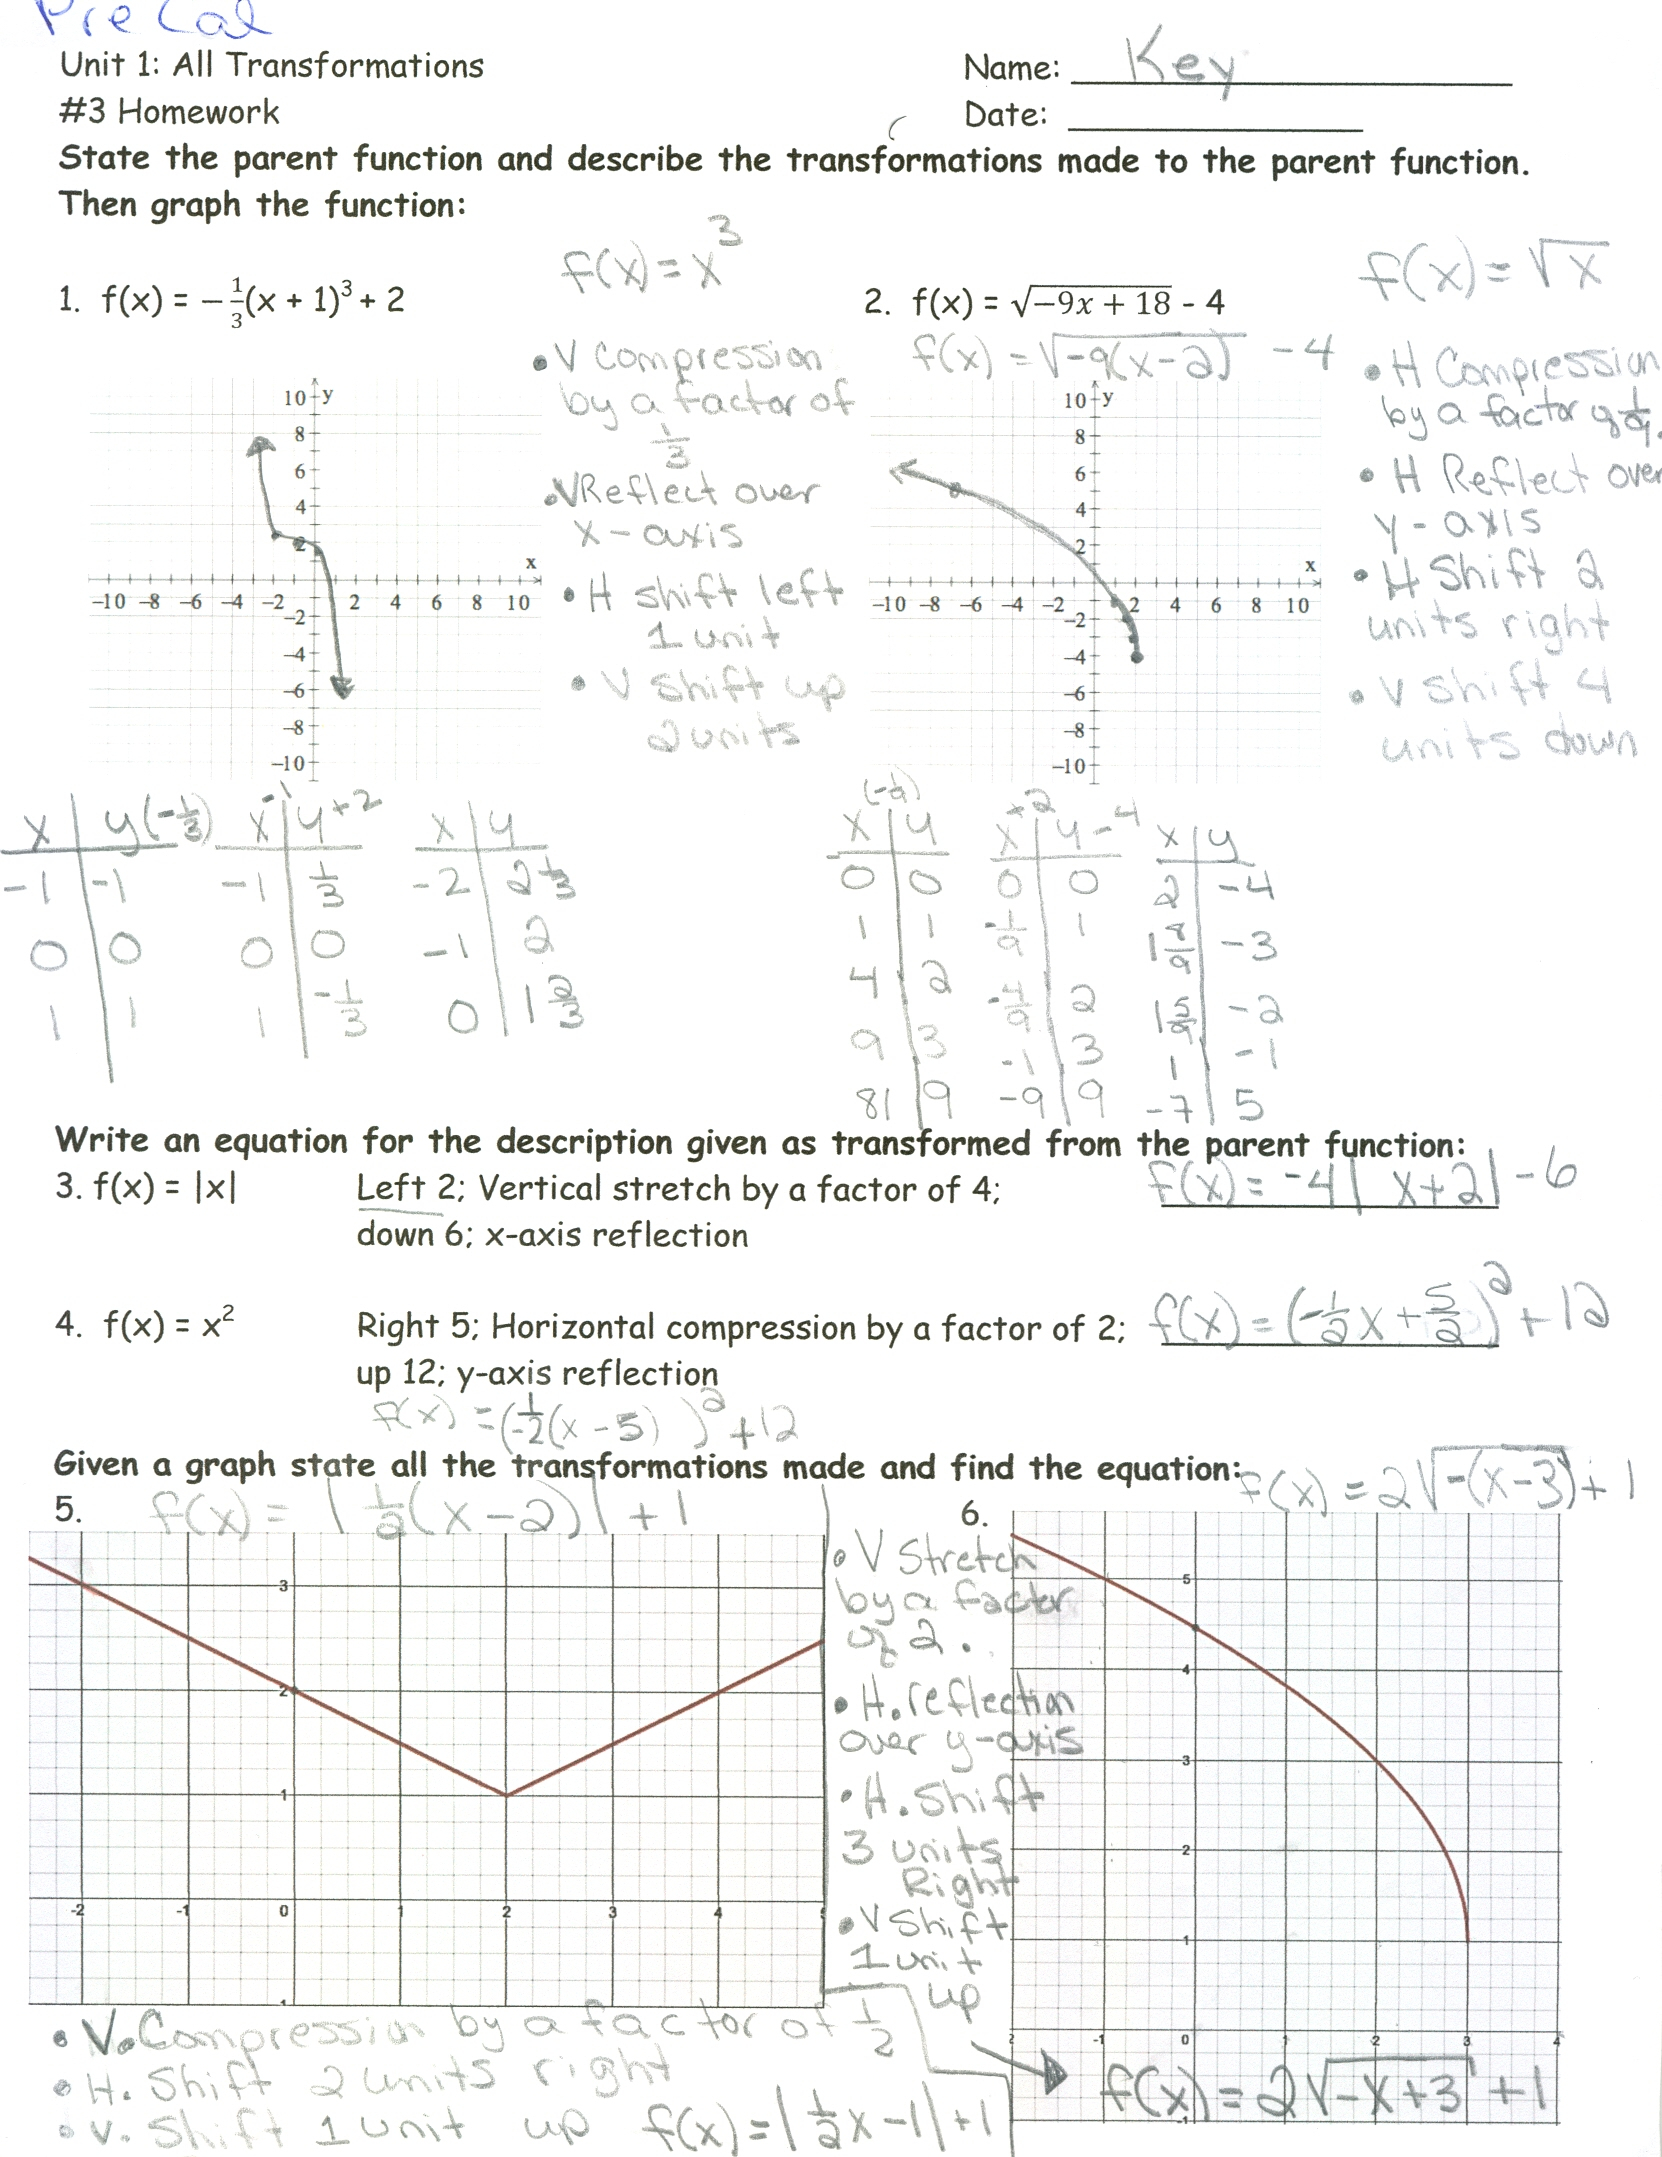 Transformations Of Functions Worksheet Answers - Nidecmege